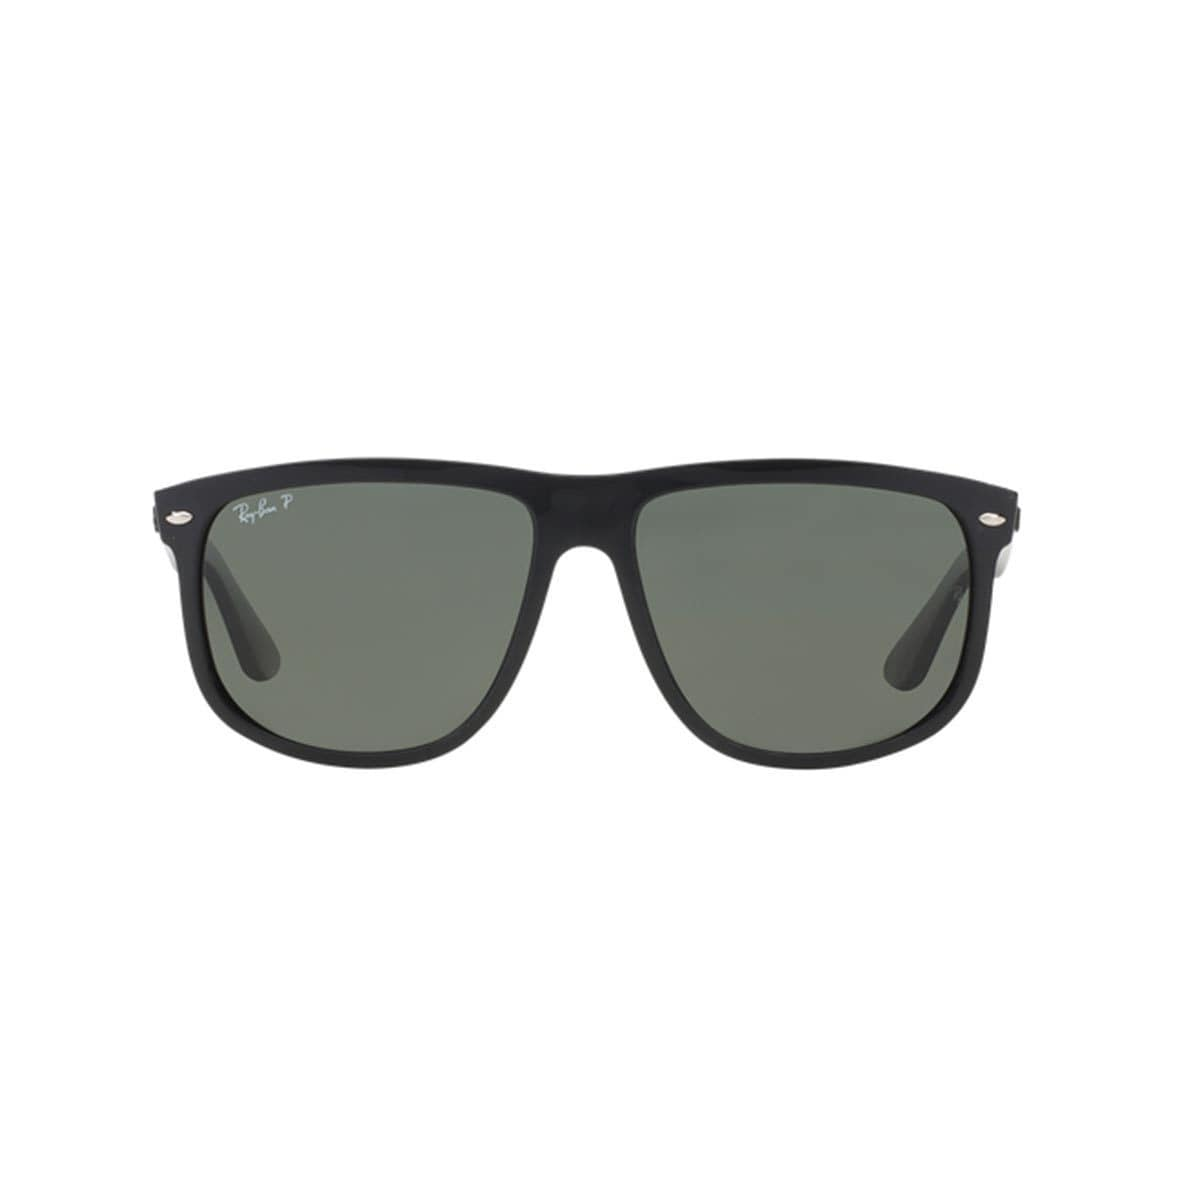 ae24d3e8f59 Shop Ray-Ban Unisex  RB 4147 601 58  Black Plastic Polarized Sunglasses (60  mm) - Free Shipping Today - Overstock - 9573143